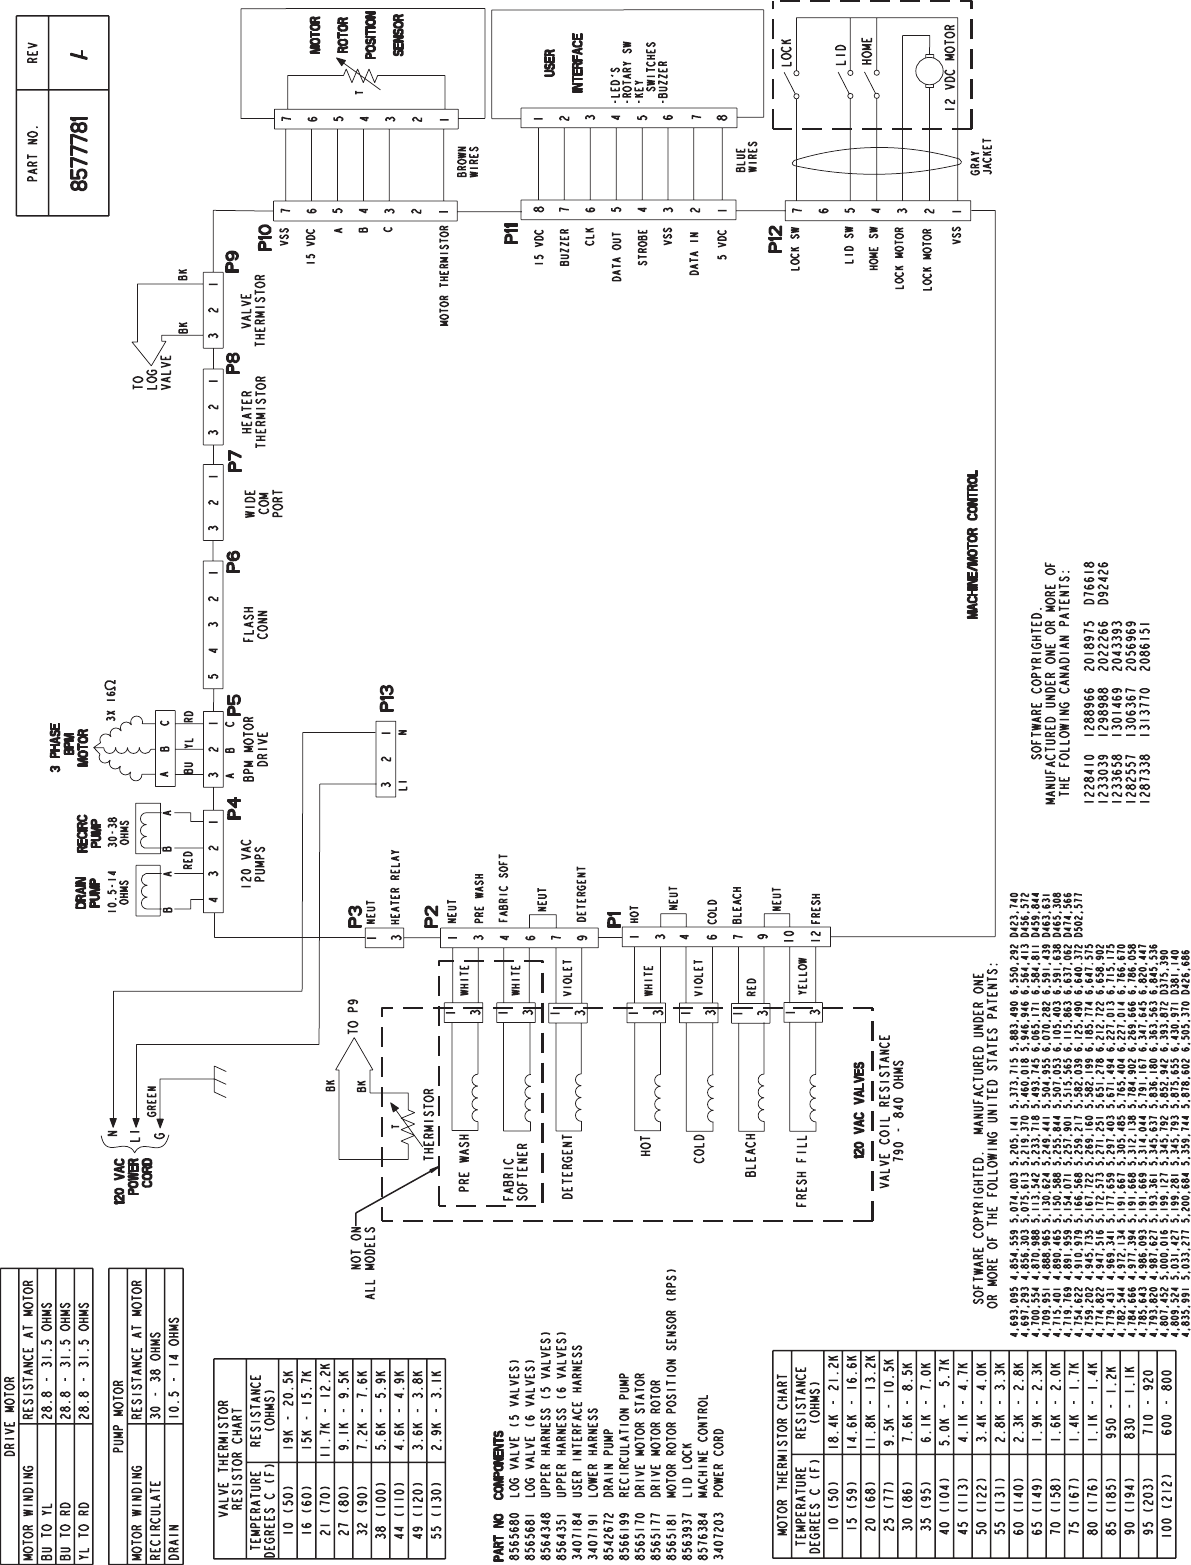 Graphic1 Kenmore Washer Wiring Sheet 110 27092602 Diagram Page 1 Of 2